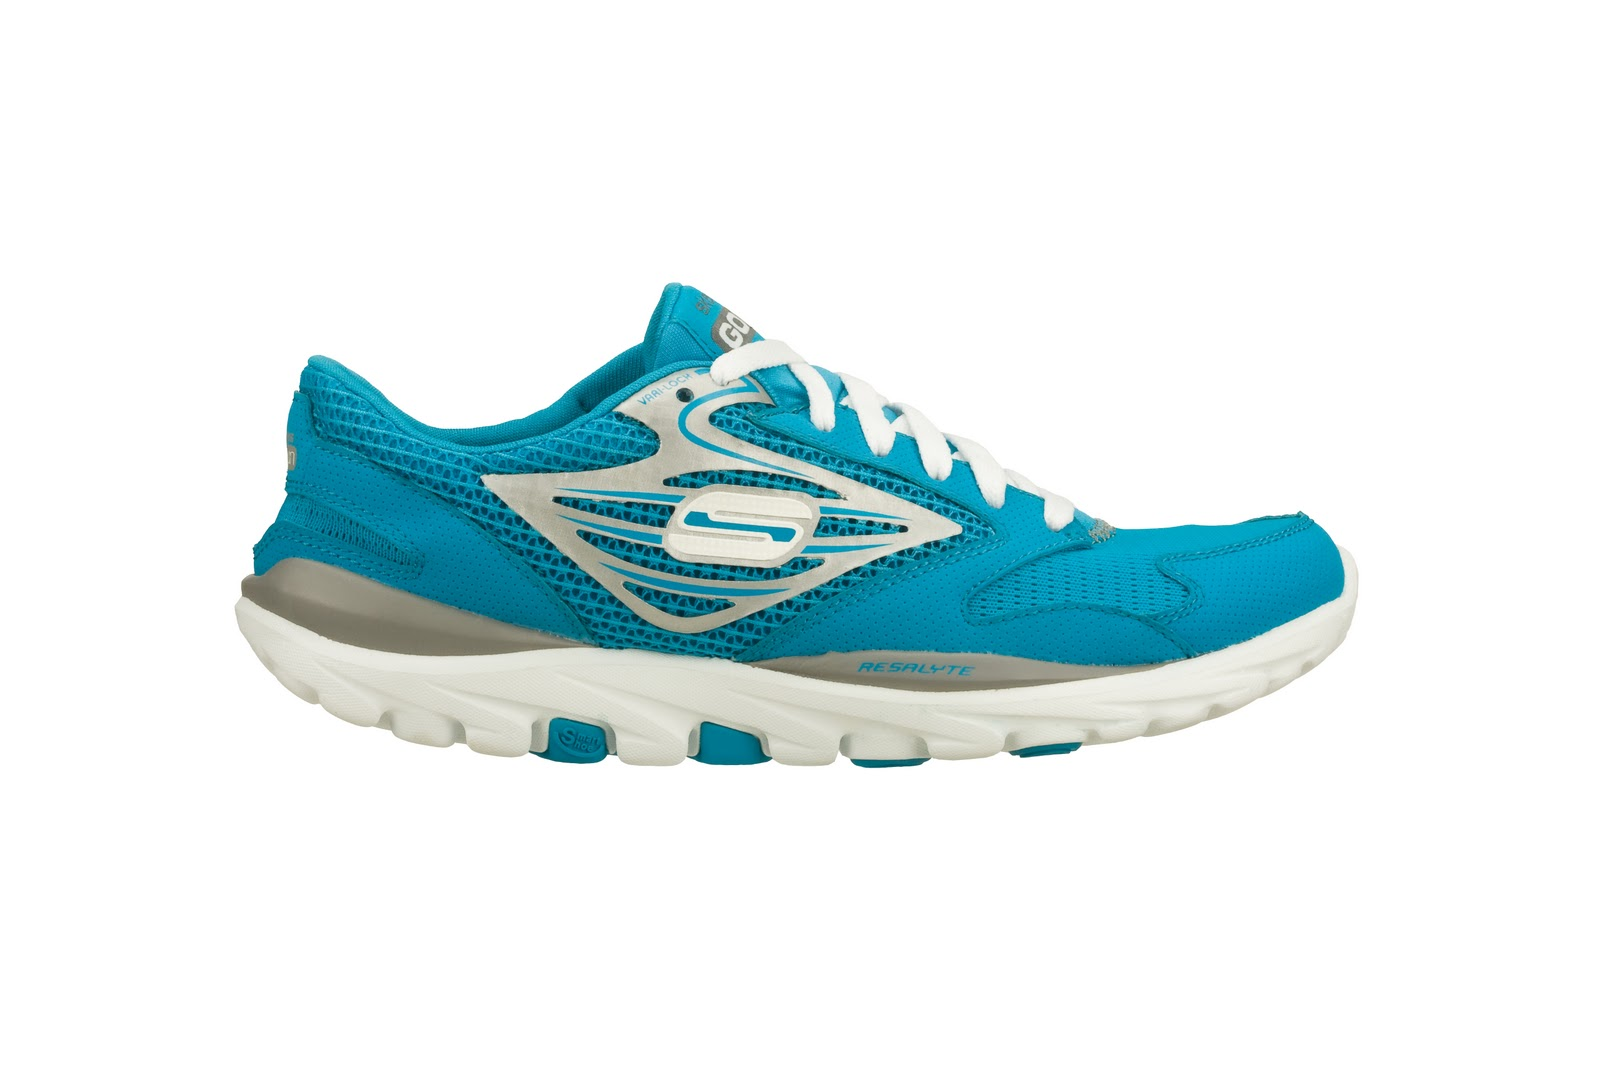 4bf8deac0f0d Win Skechers Running Shoes! I am so excited to have Nicole Wilson as my  guest blogger today. I met Nicole at Can Fit Pro in Toronto last August.